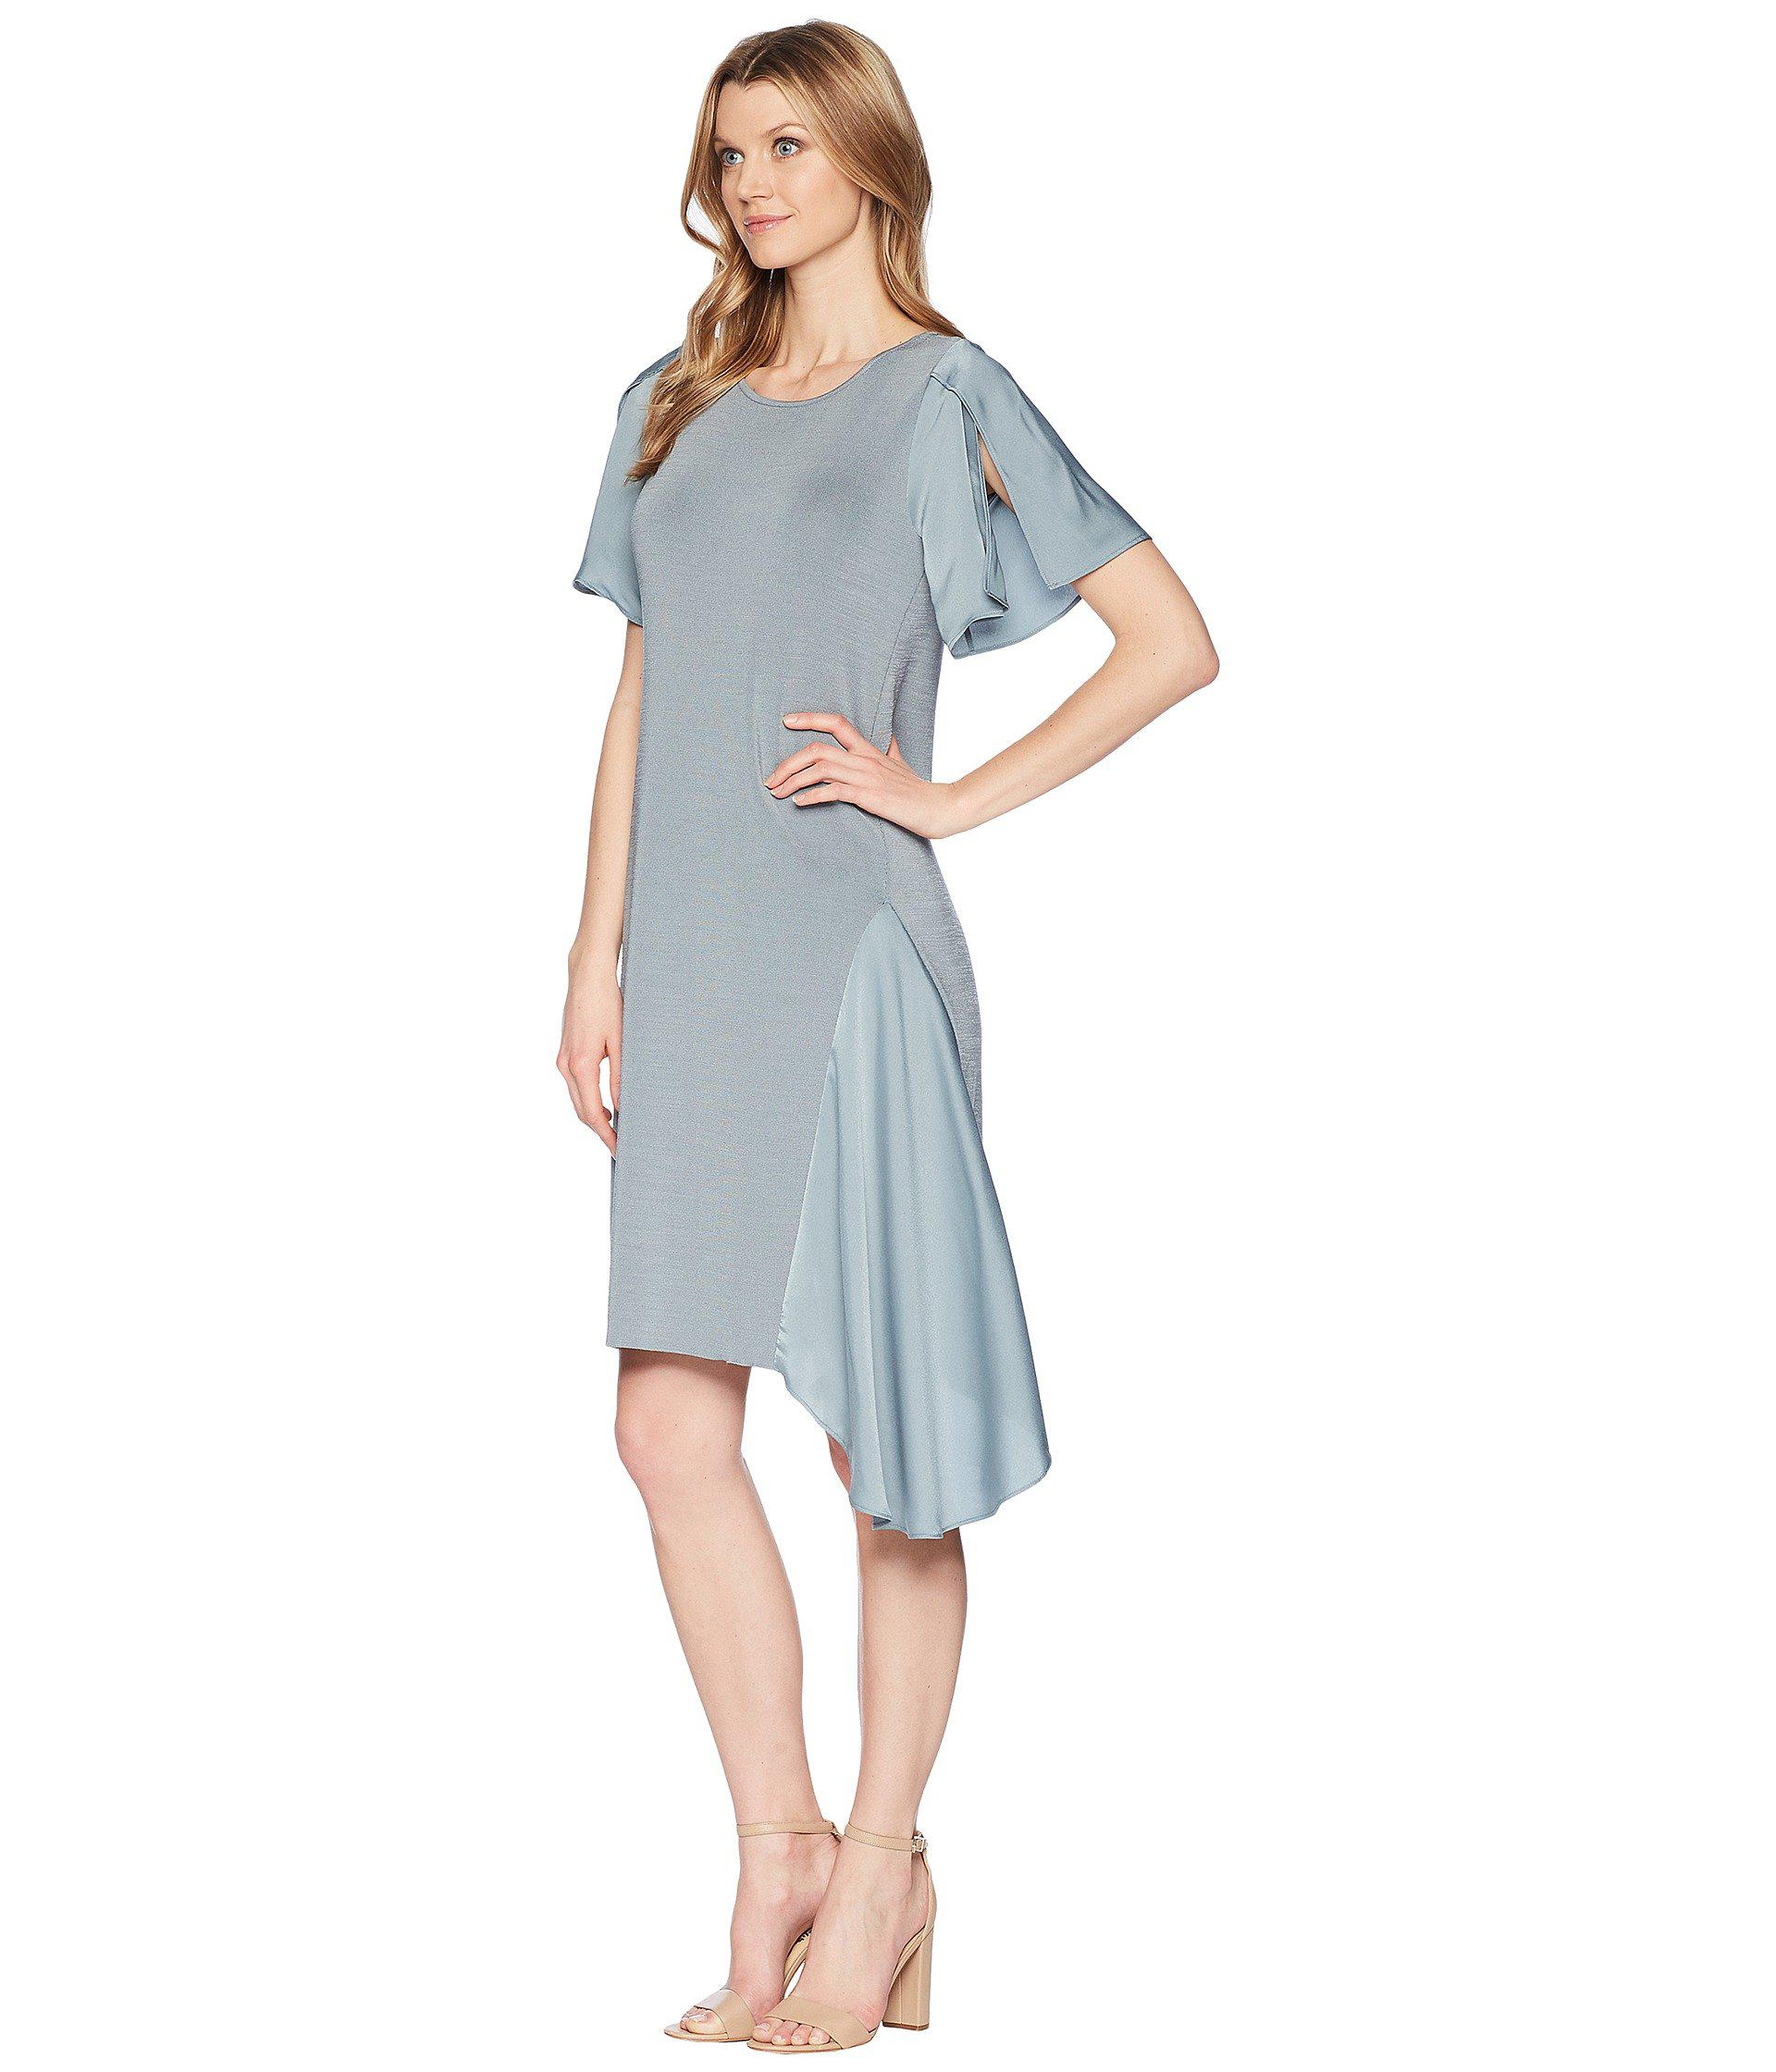 aa6a979cfc2 Lyst - NIC+ZOE Mixed Flutter Dress in Blue - Save 53%